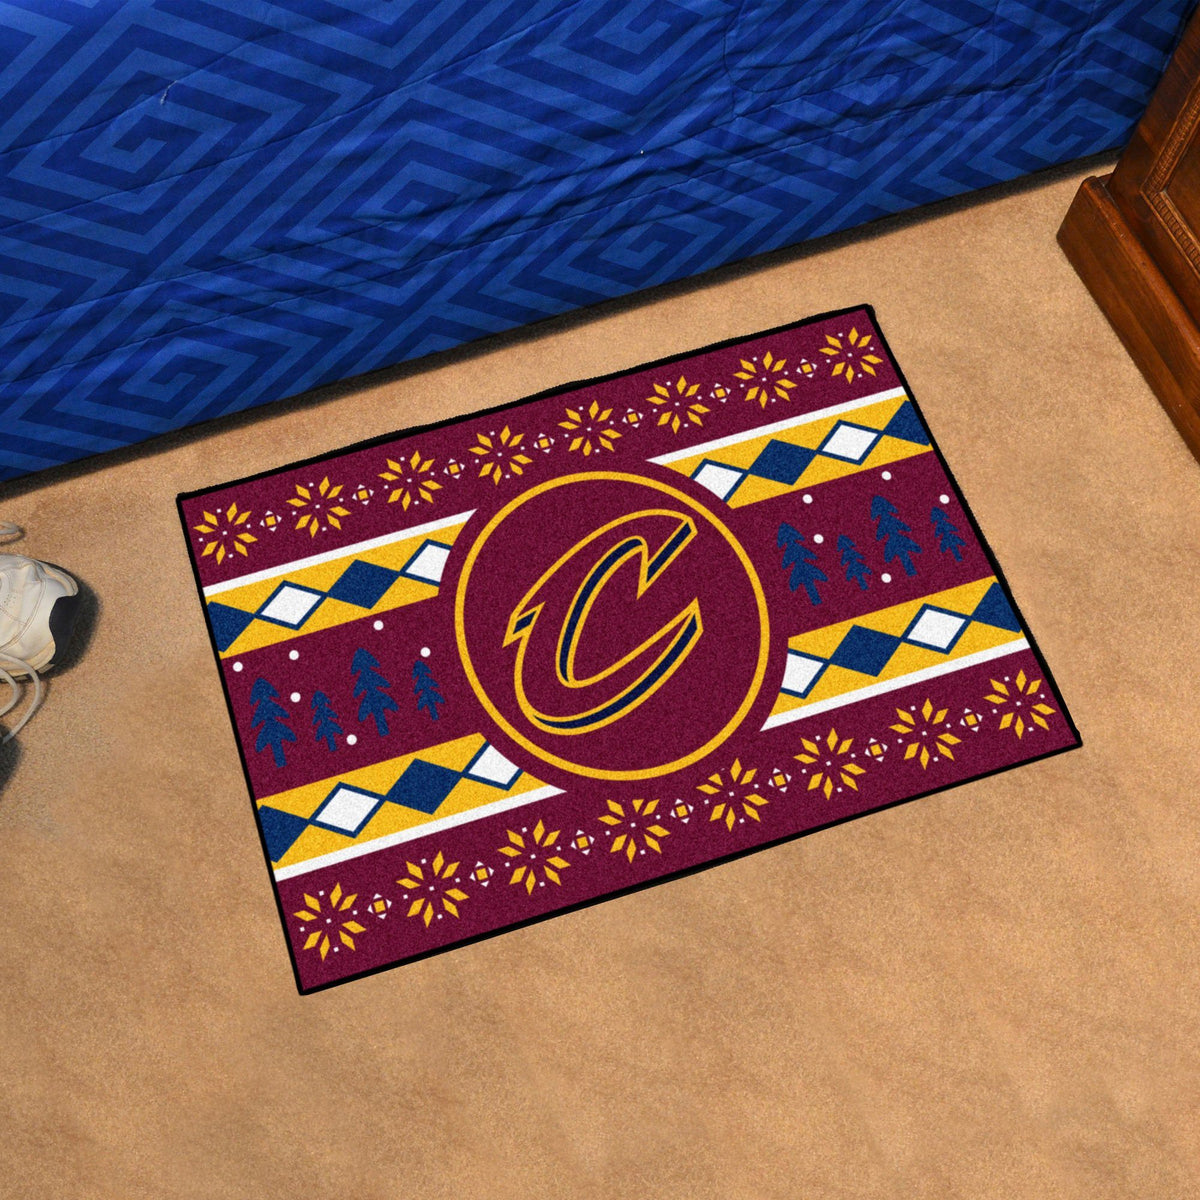 NBA - Holiday Sweater Starter Mat NBA Mats, Rectangular Mats, Holiday Sweater Starter Mat, NBA, Home Fan Mats Cleveland Cavaliers